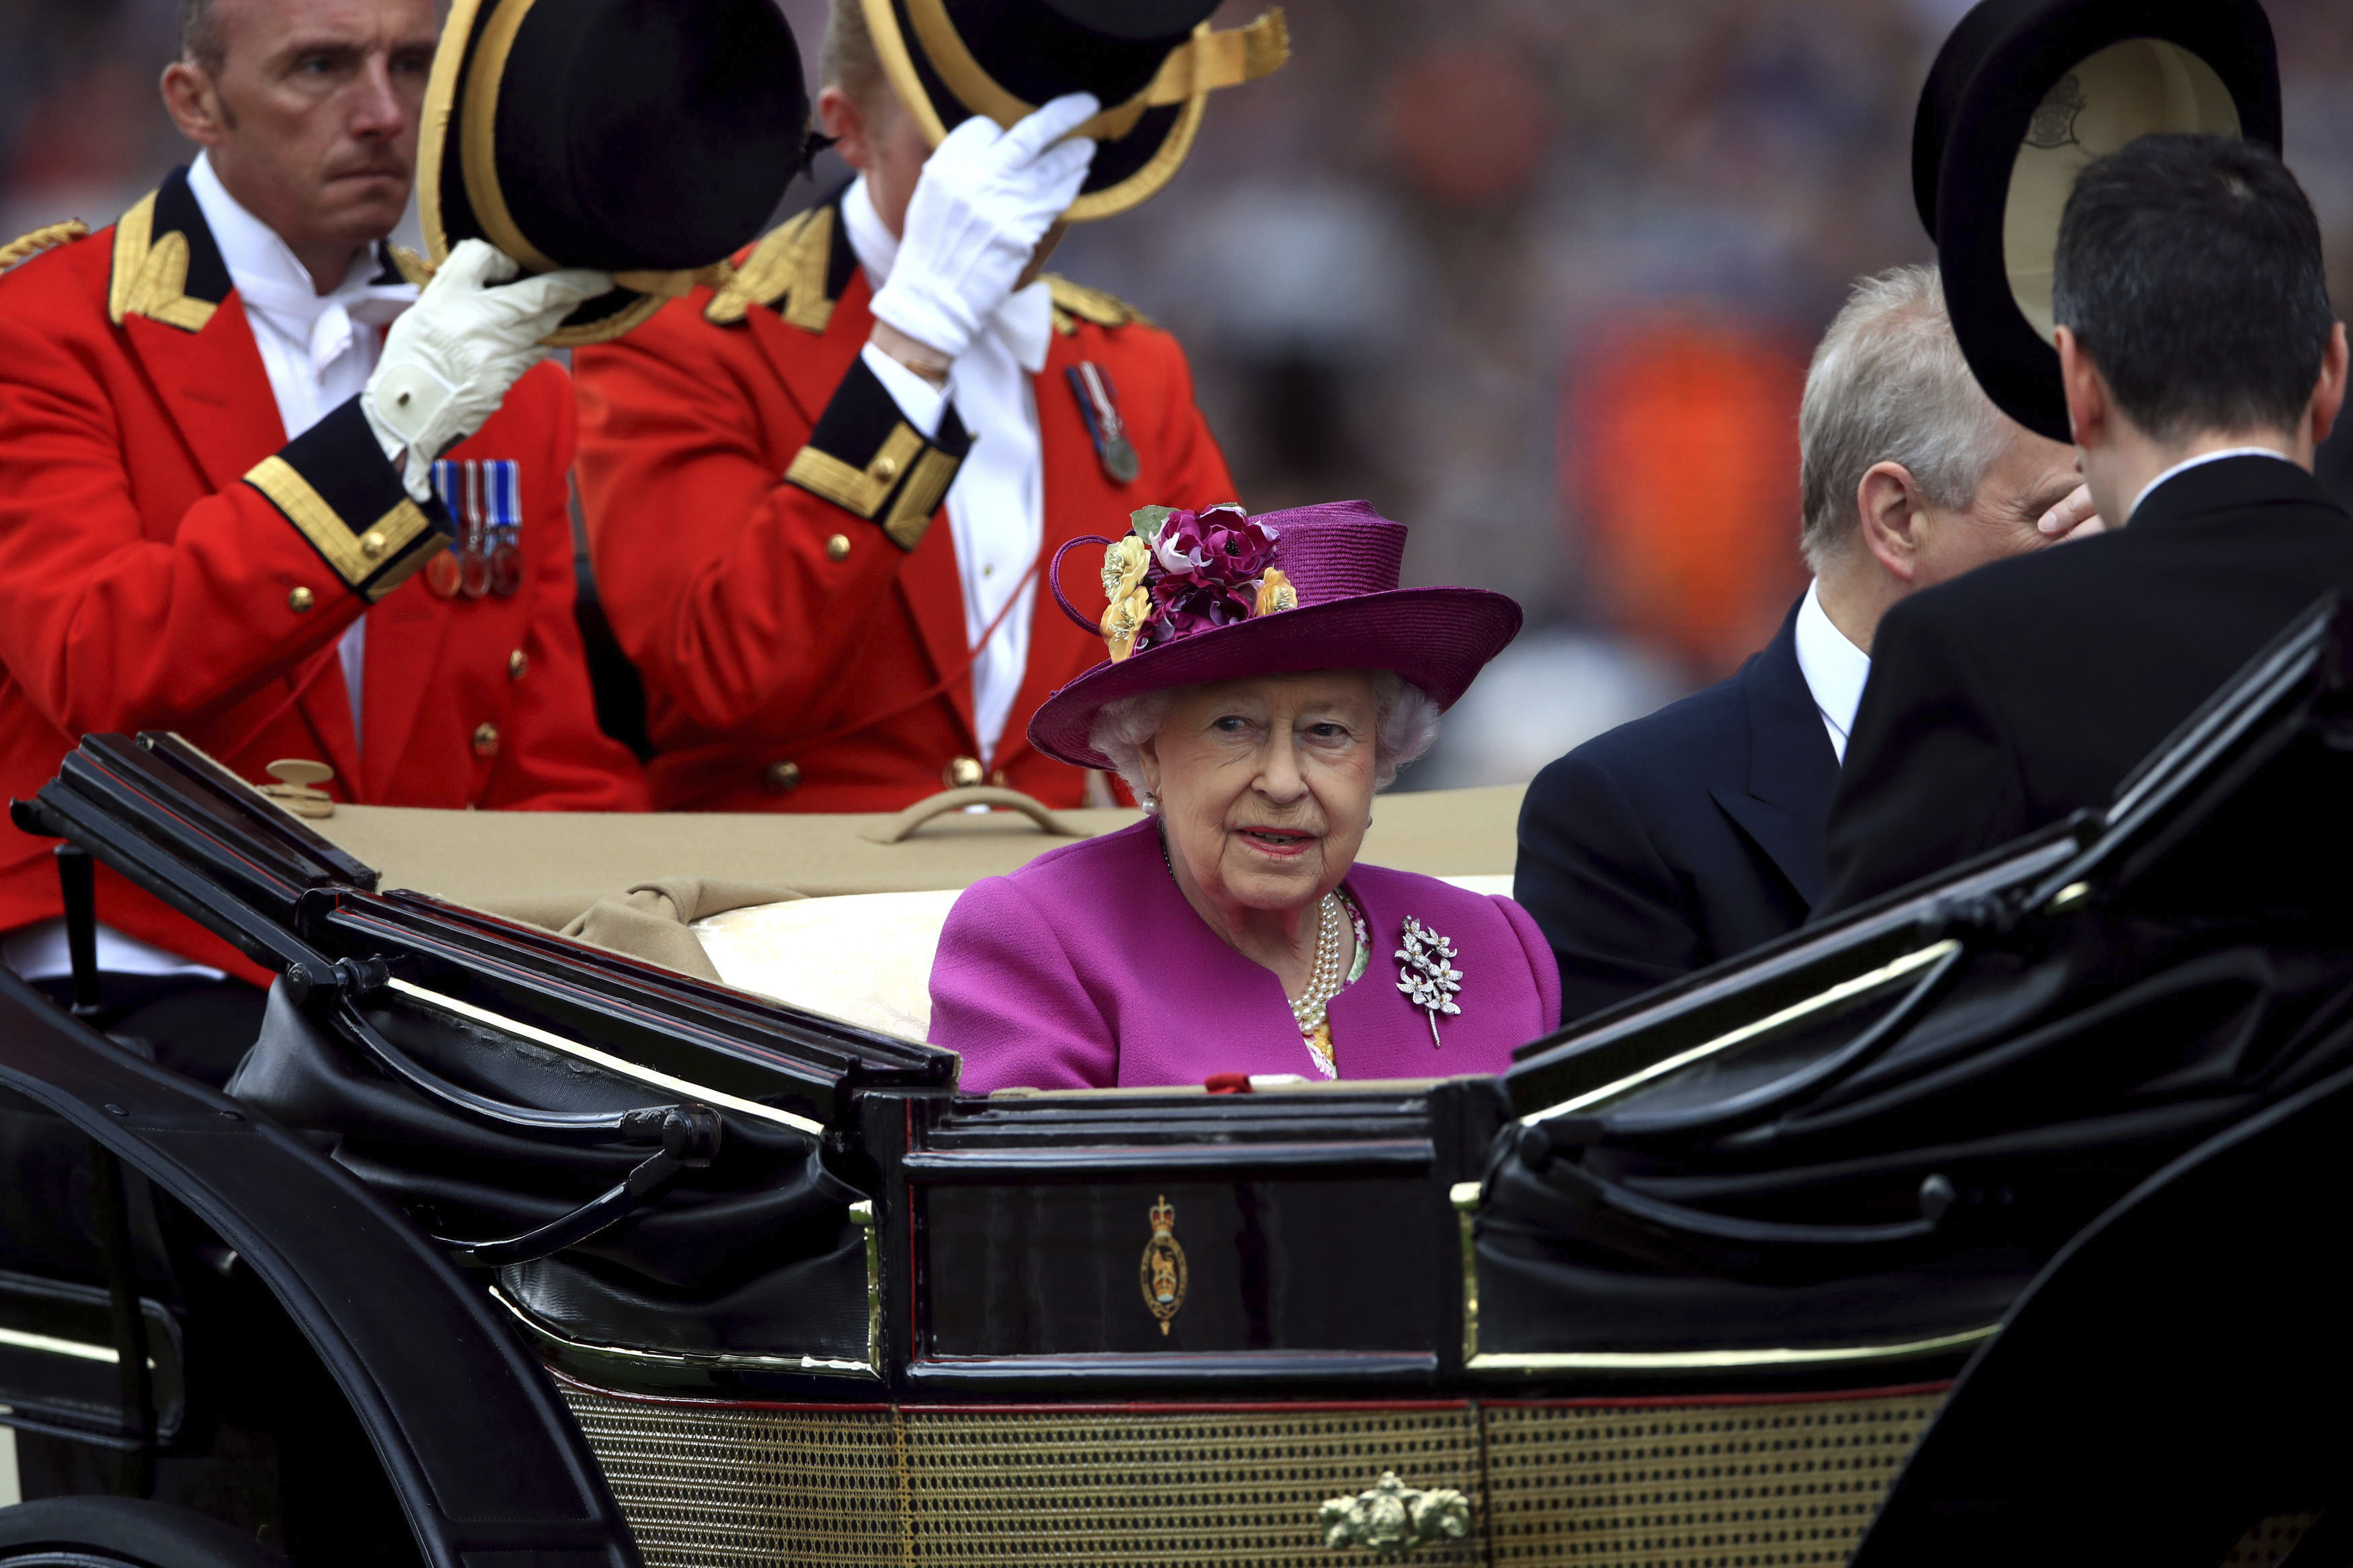 Queen Elizabeth II arrives during during day five of Royal Ascot at Ascot Racecourse, England. Saturday June 24, 2017. (John Walton/PA via AP)